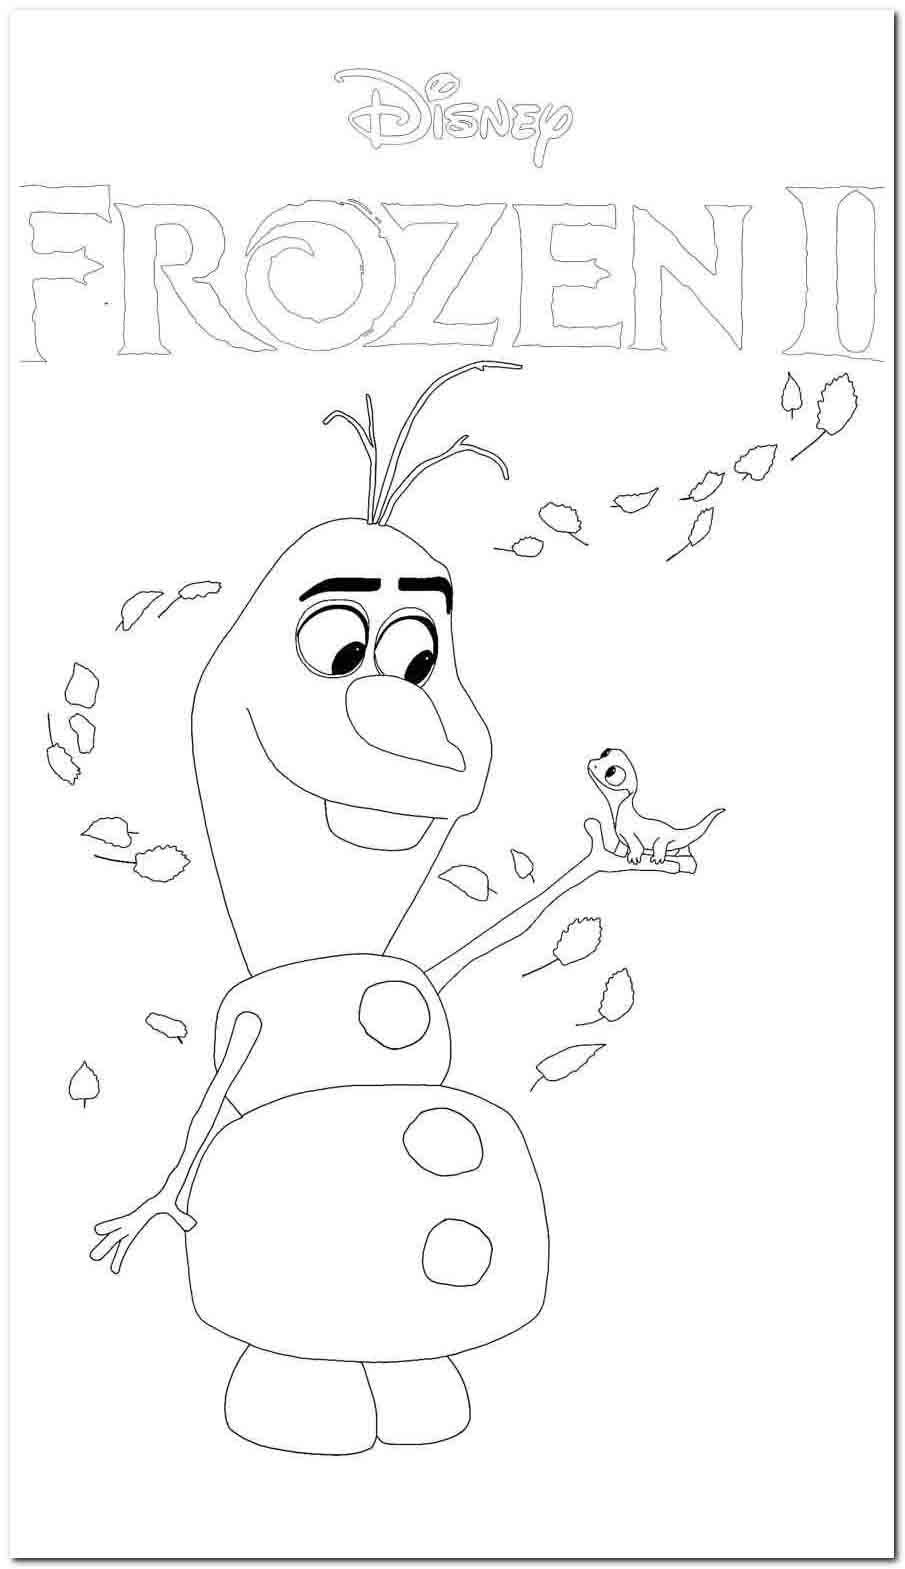 12 Coloring Pages Fathers Day Coloring Pages In 2020 Disney Coloring Sheets Frozen Coloring Pages Unicorn Coloring Pages